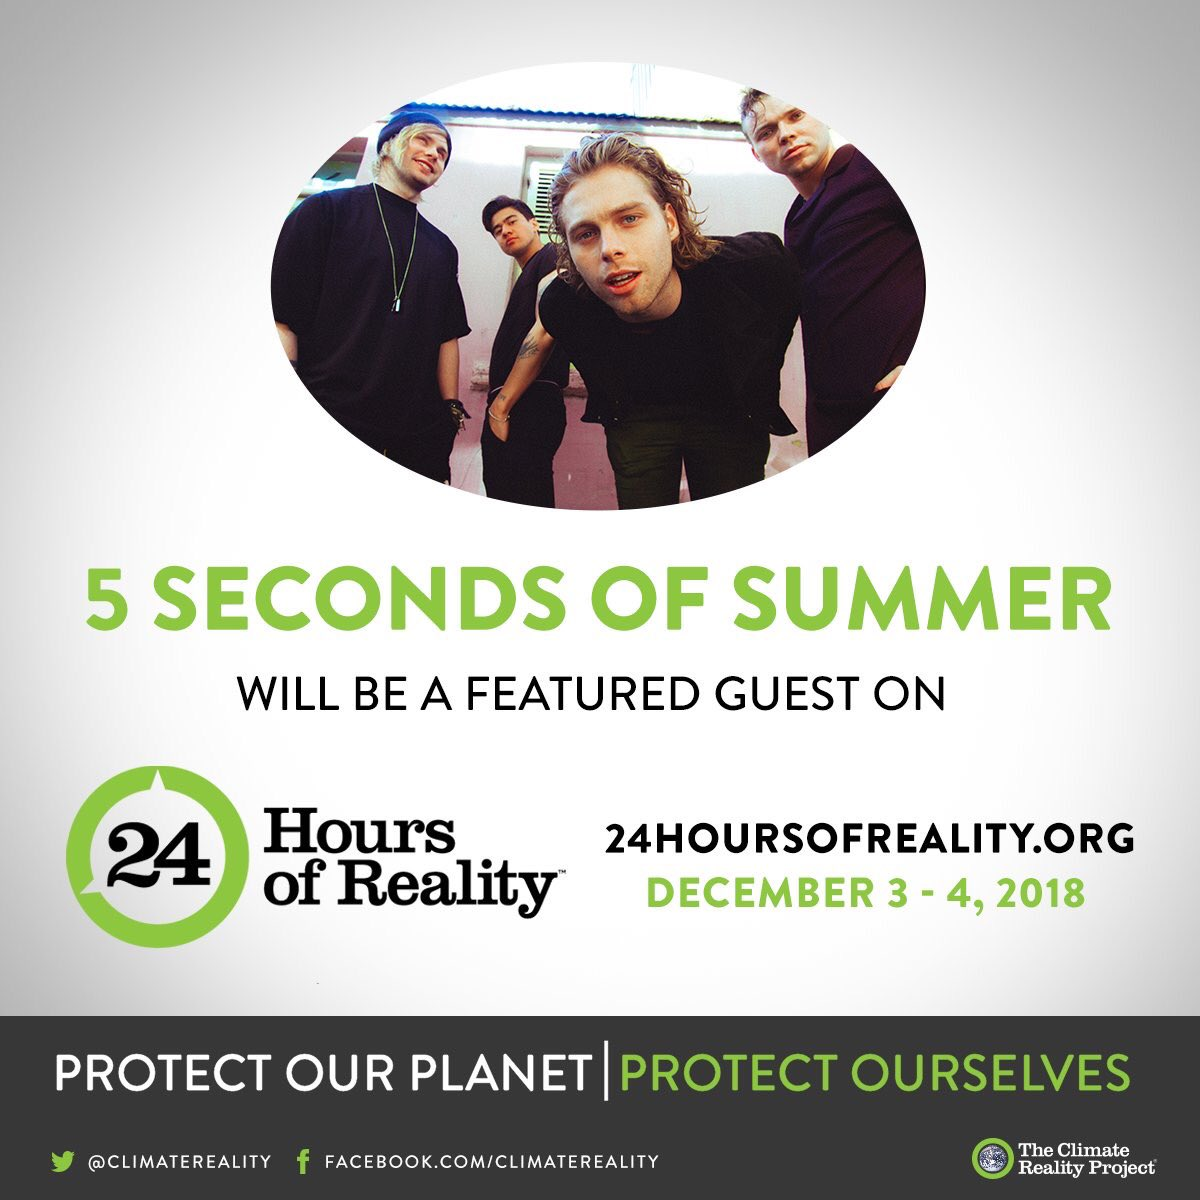 Anything is possible when we all come together // We're honored to join @climatereality on Dec. 3-4 for #24HoursofReality, the largest global conversation on the climate crisis. Please make yourselves aware // http://bit.ly/2yXUGW2